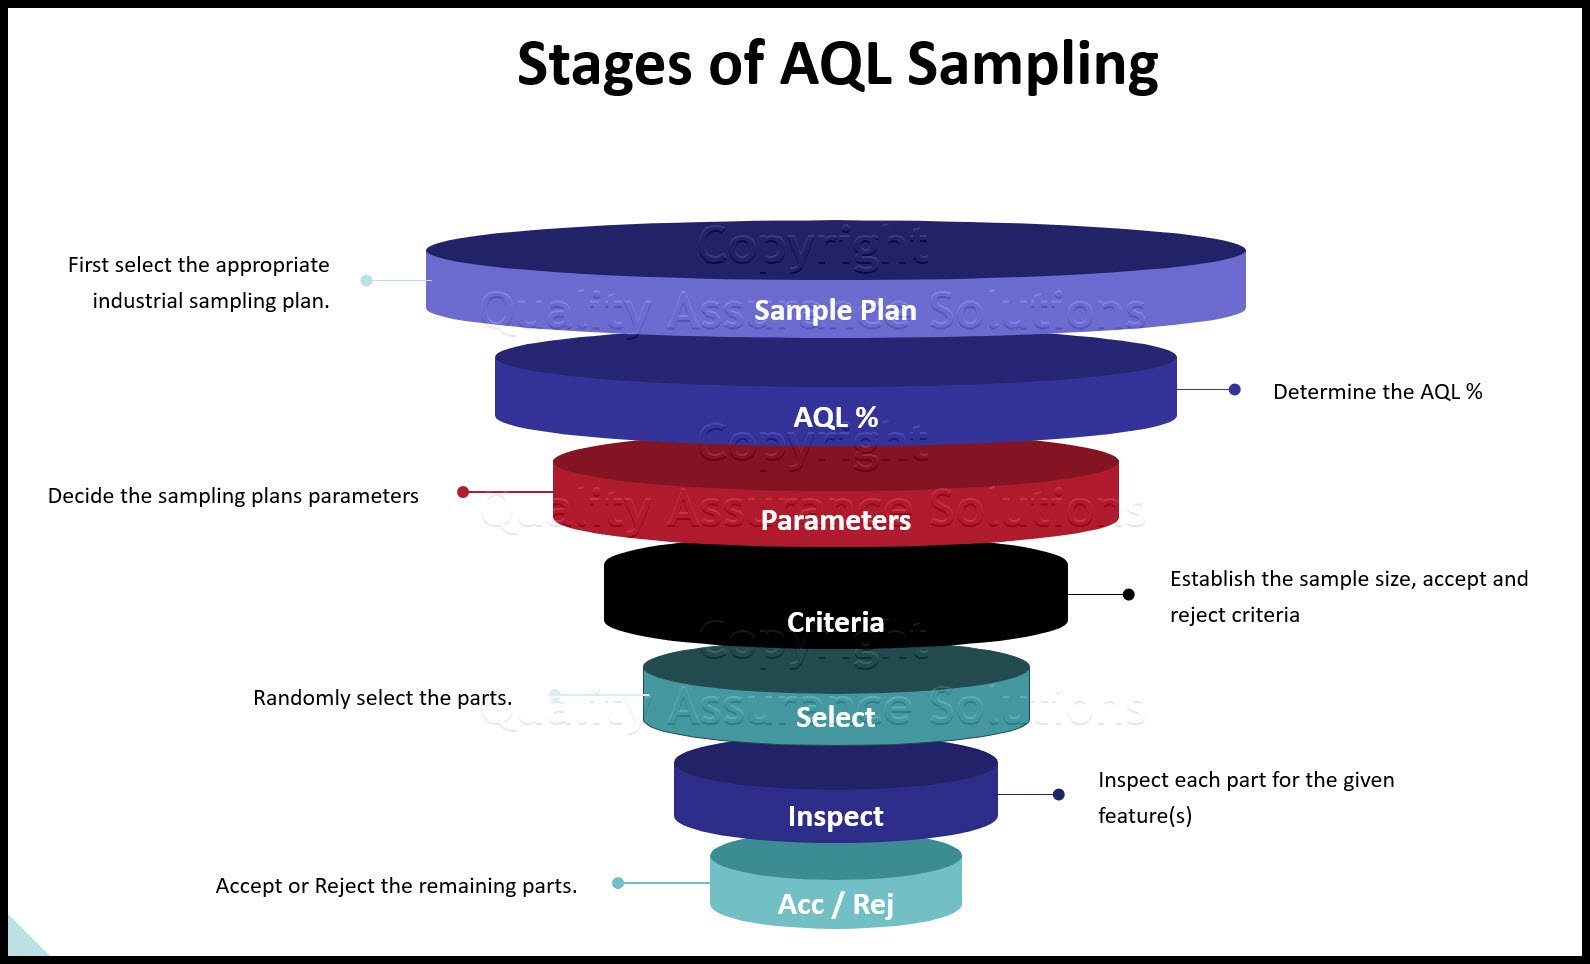 Stages of AQL Sampling